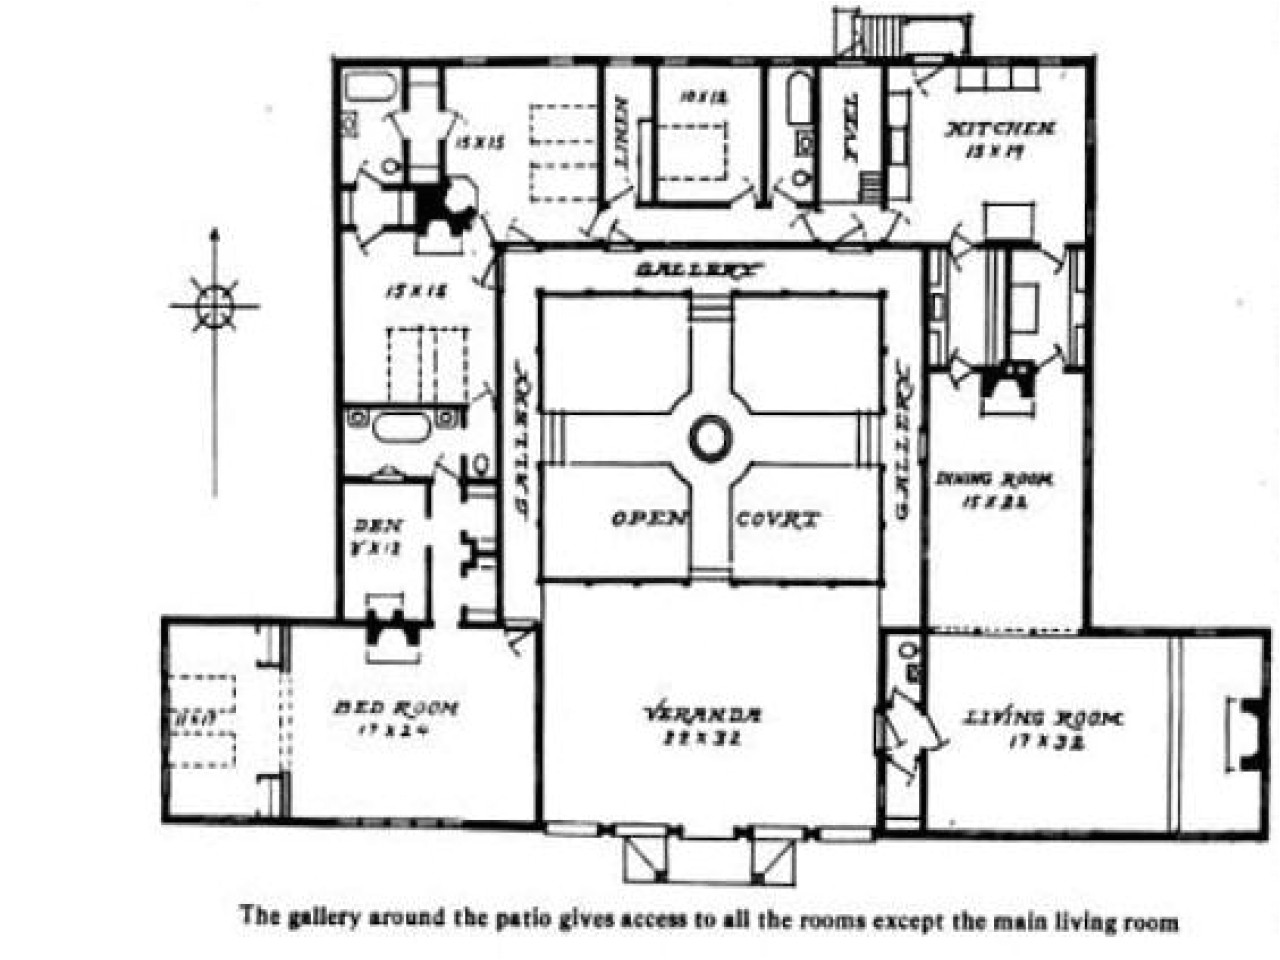 Small Courtyard Home Plans Small Hacienda House Plans Hacienda Style House Plans with